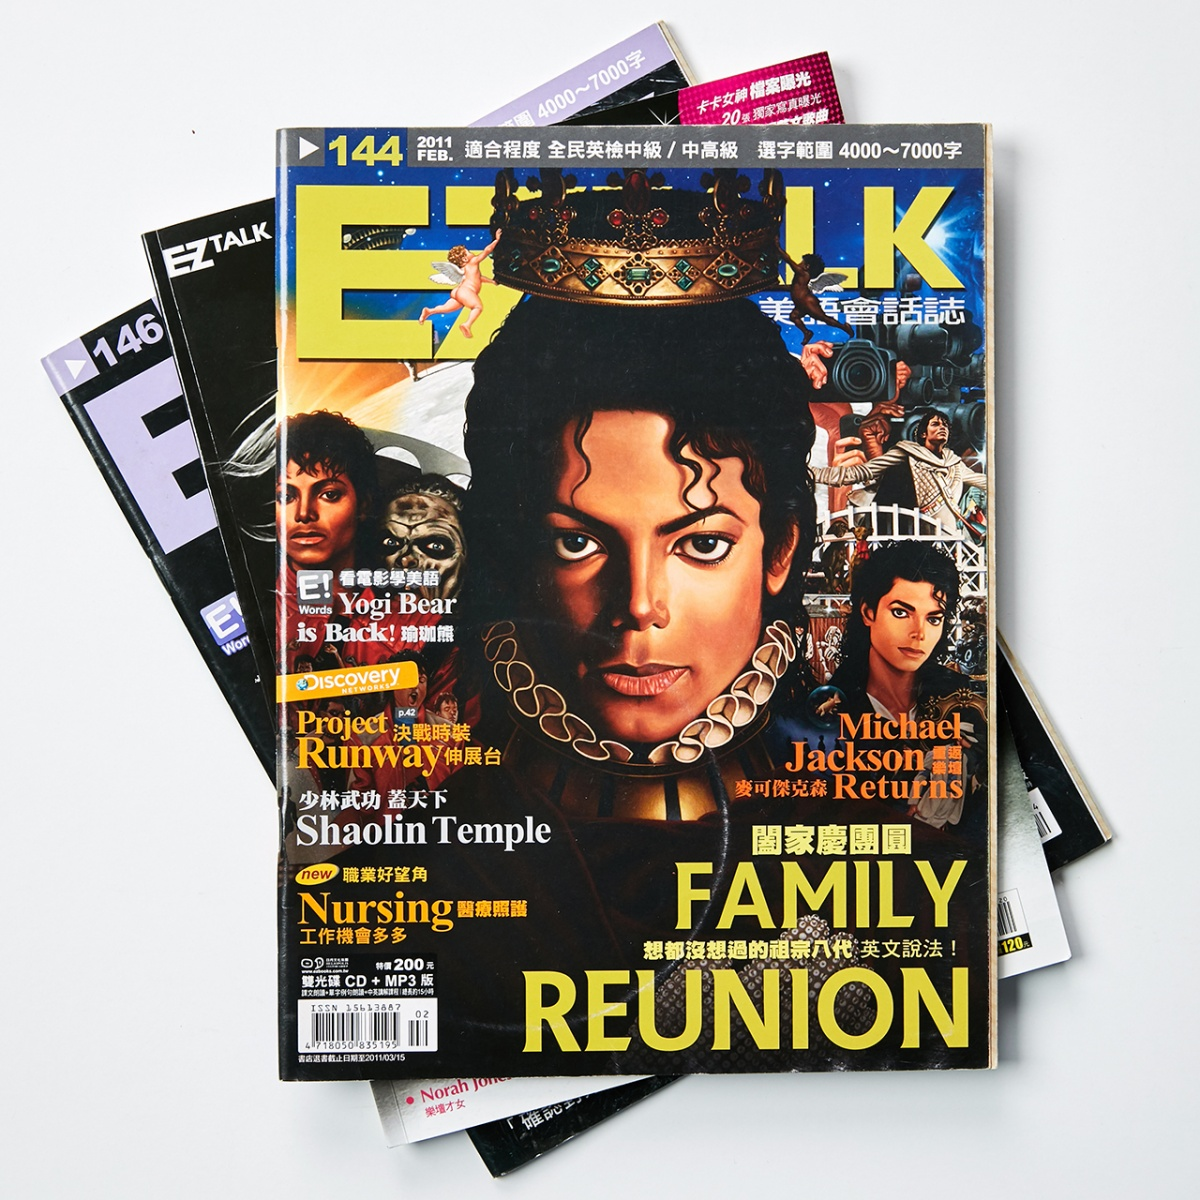 Michael Jackson story layout design on magazine issued in Taiwan in 2011 Feb-a